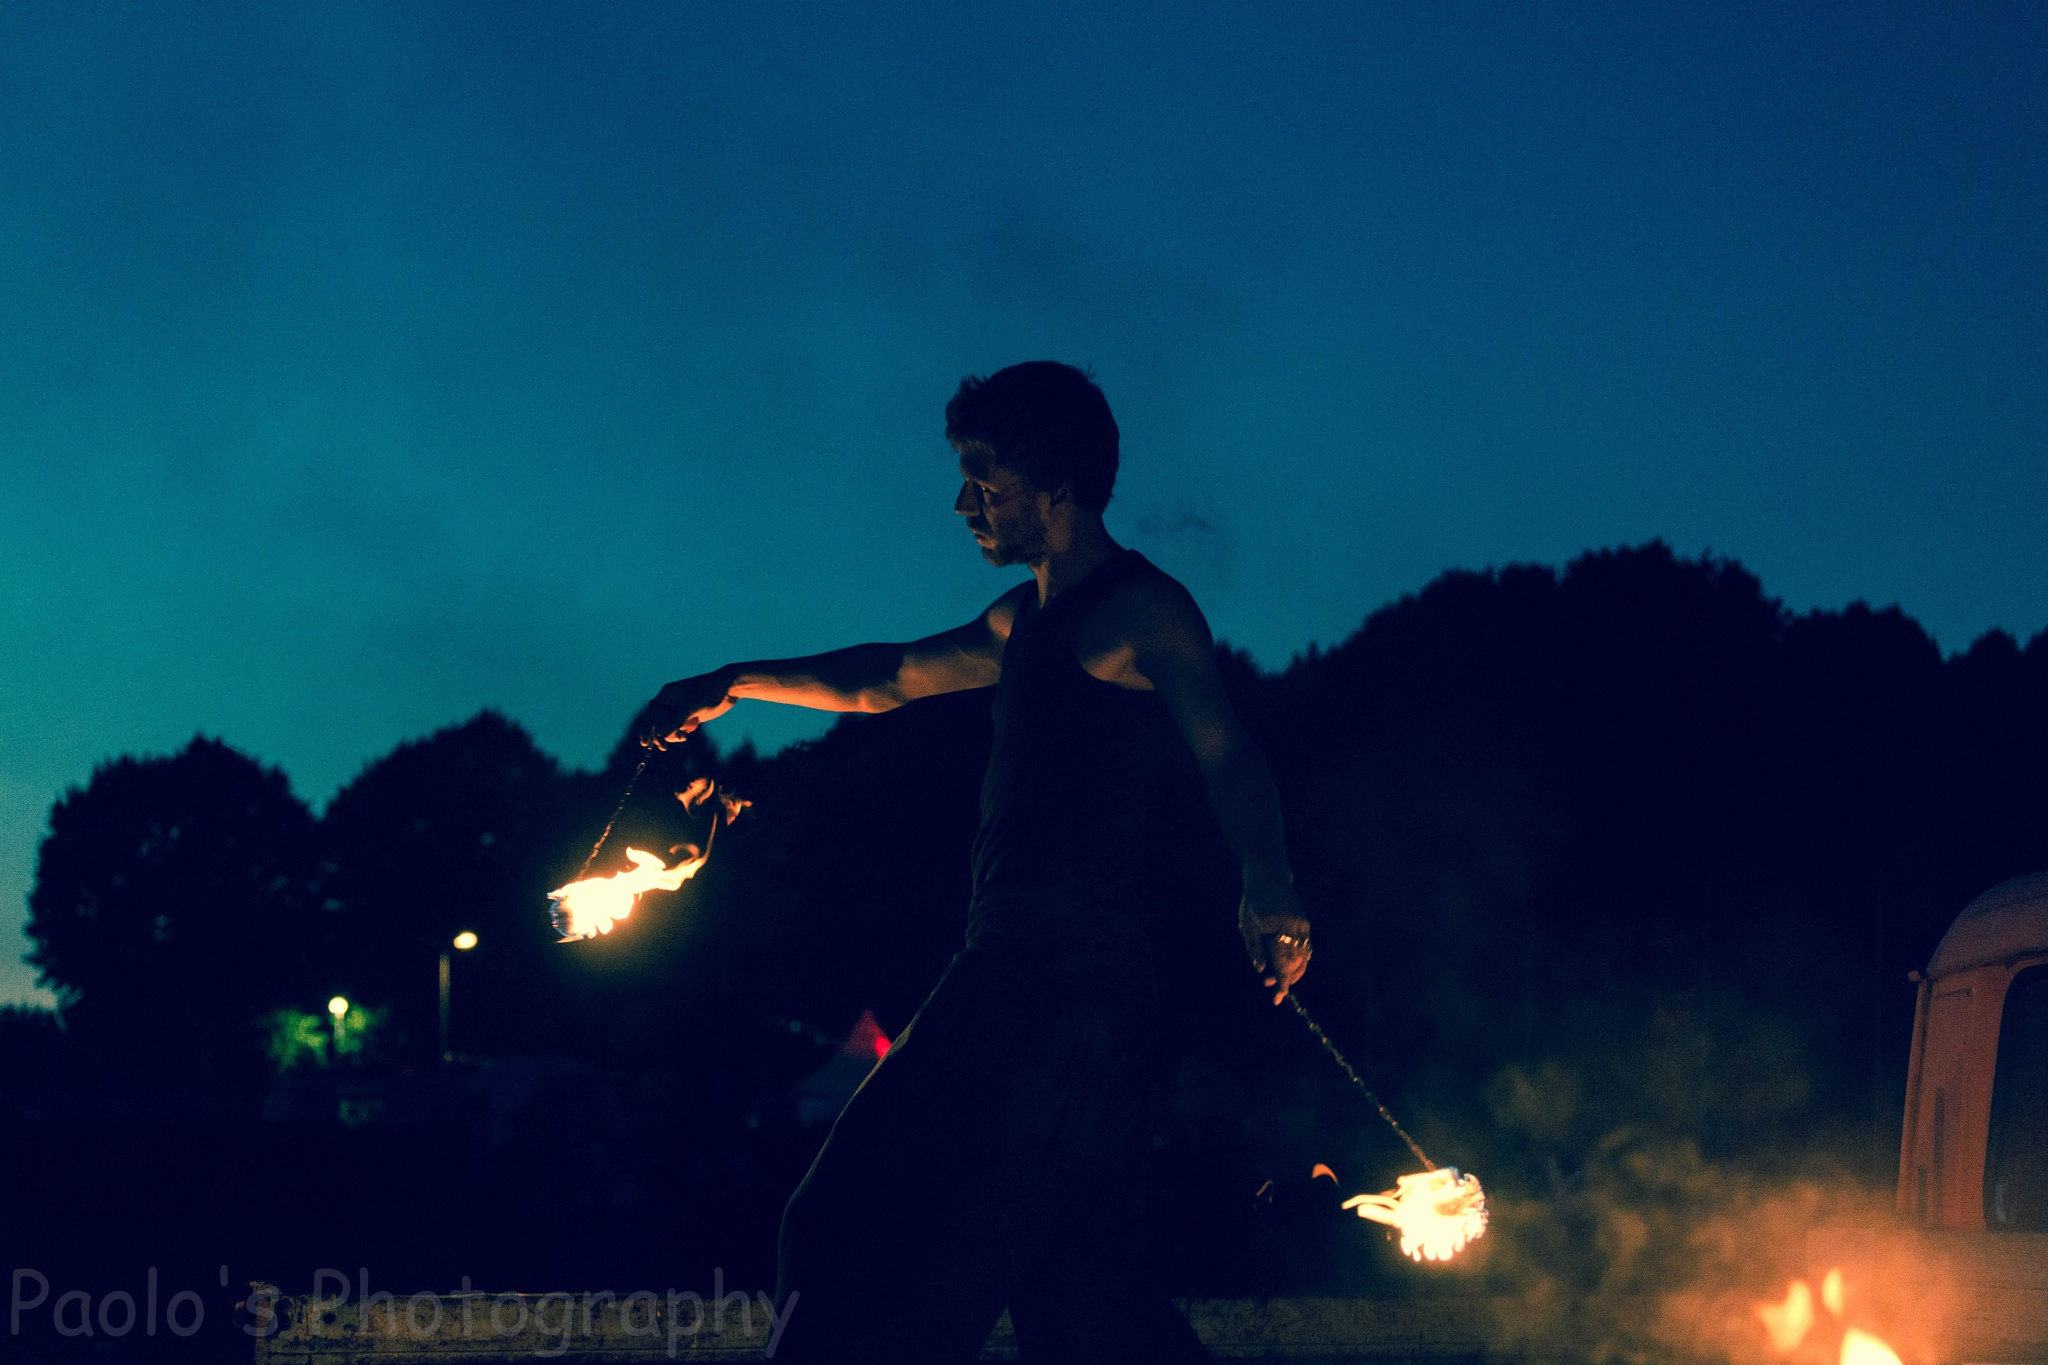 Feuershow by Paolo's Photography